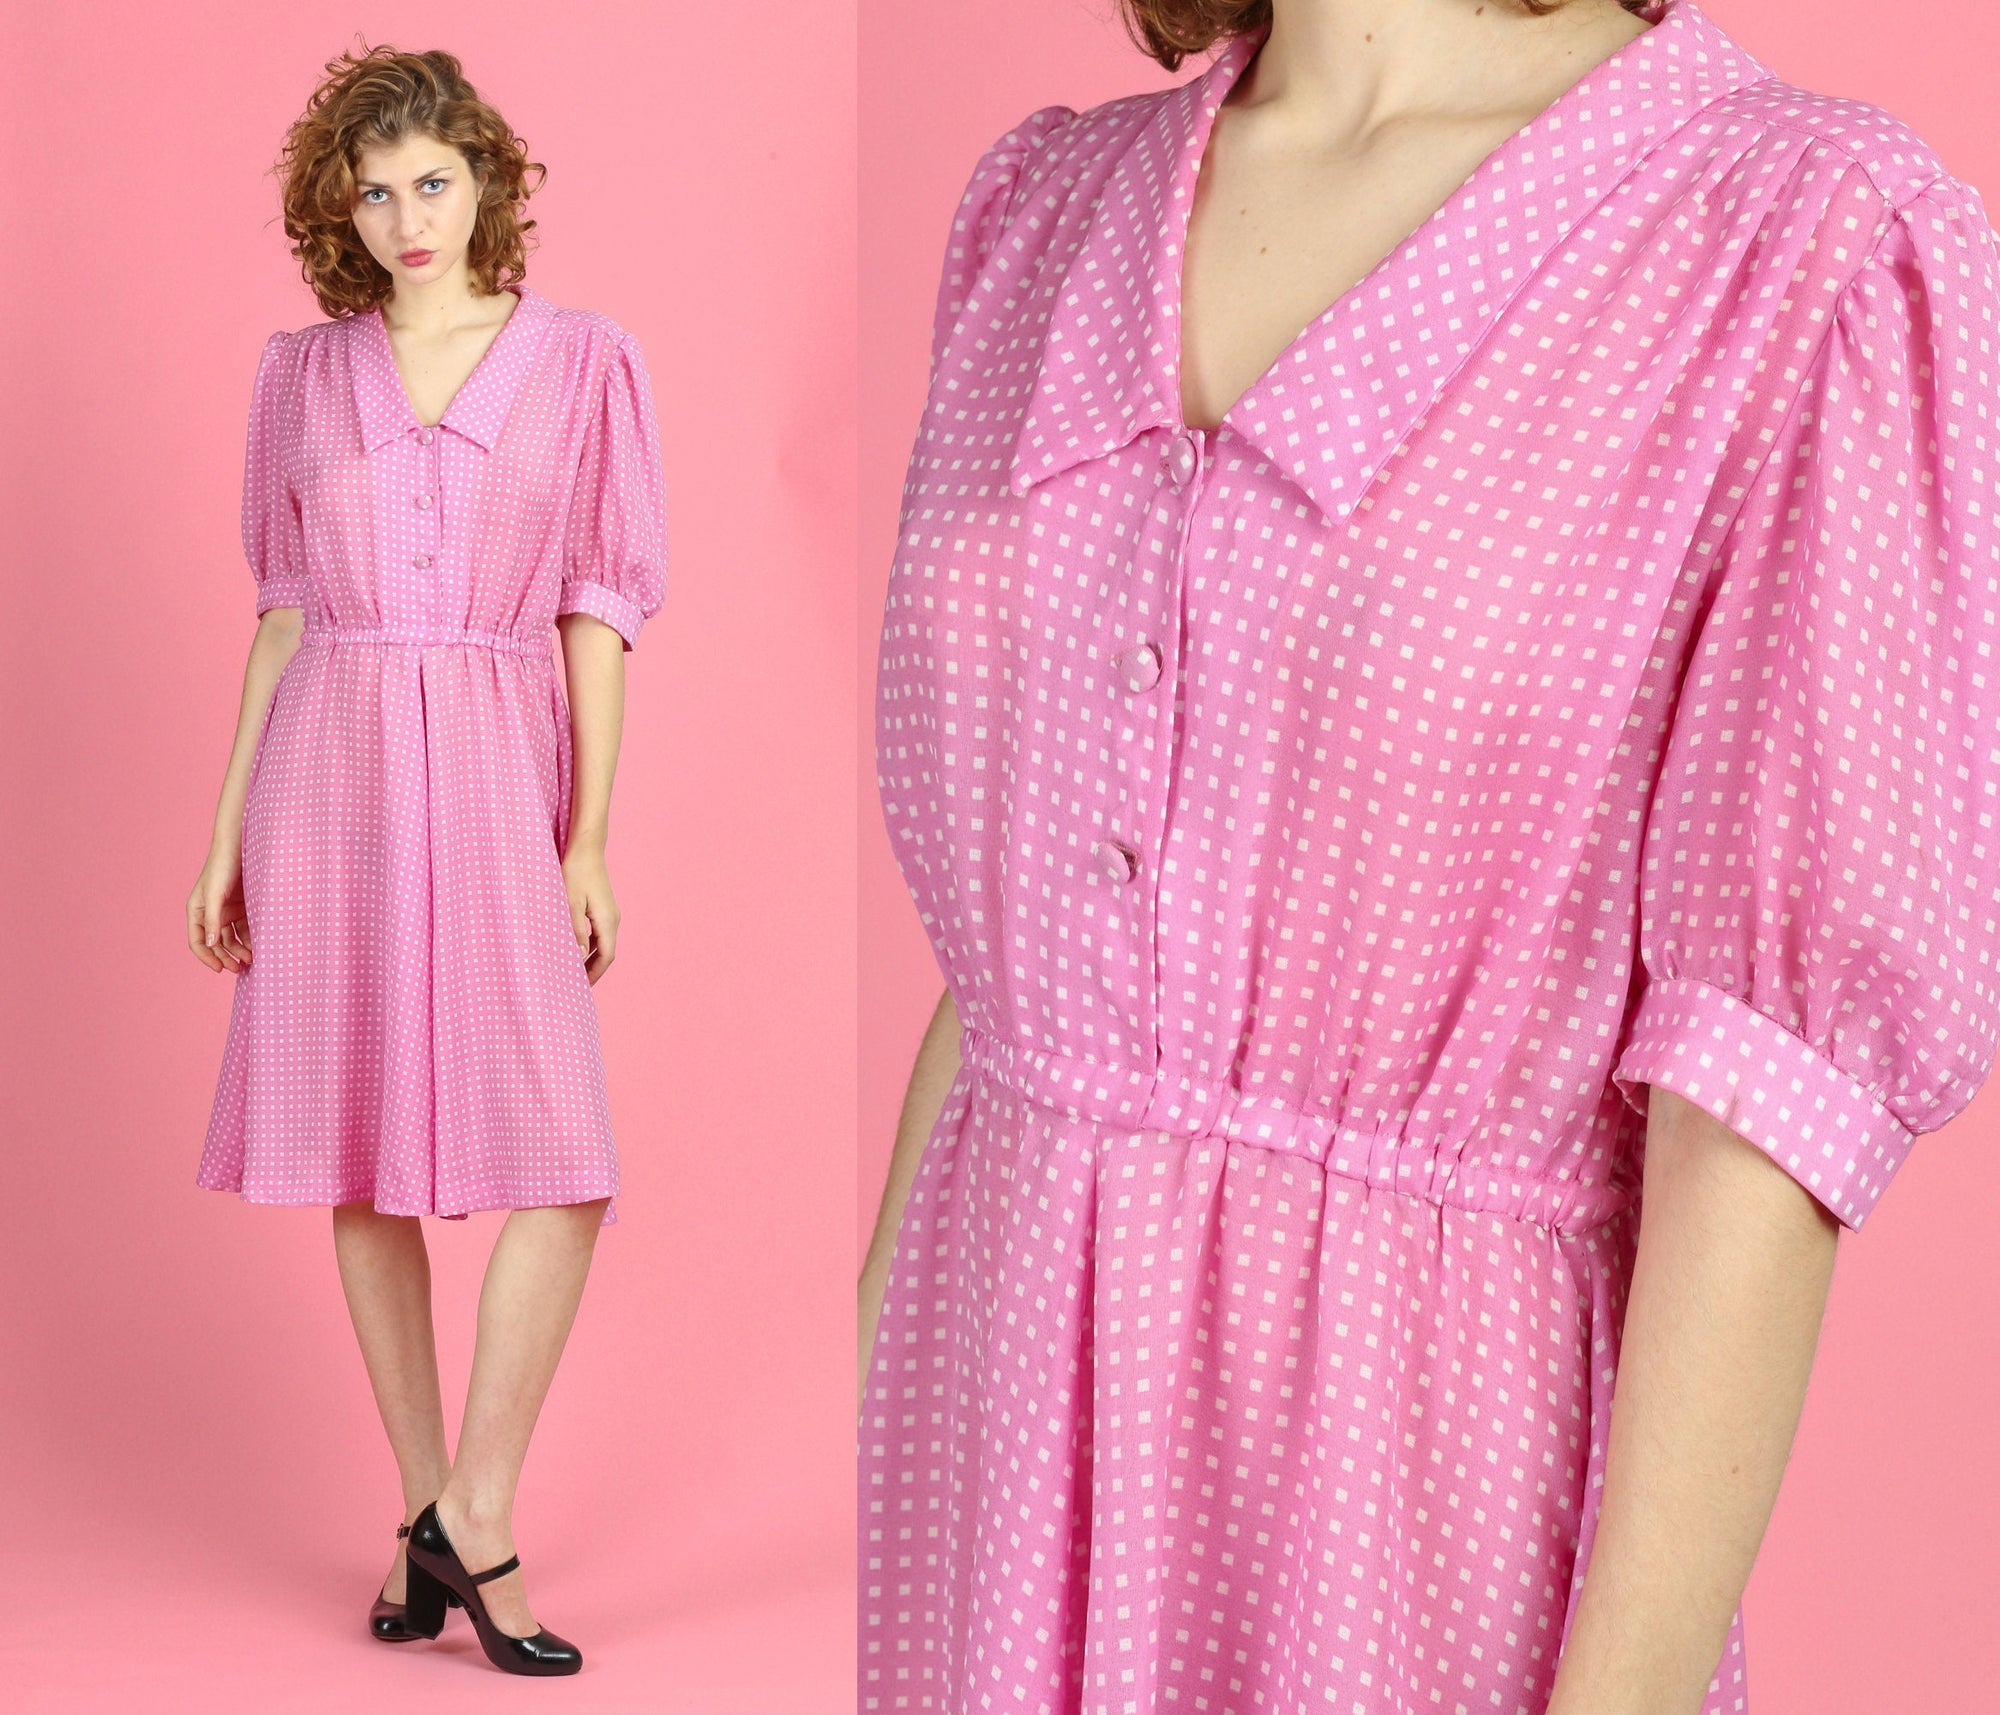 60s Pink Polka Dot Shirtwaist Dress - Large